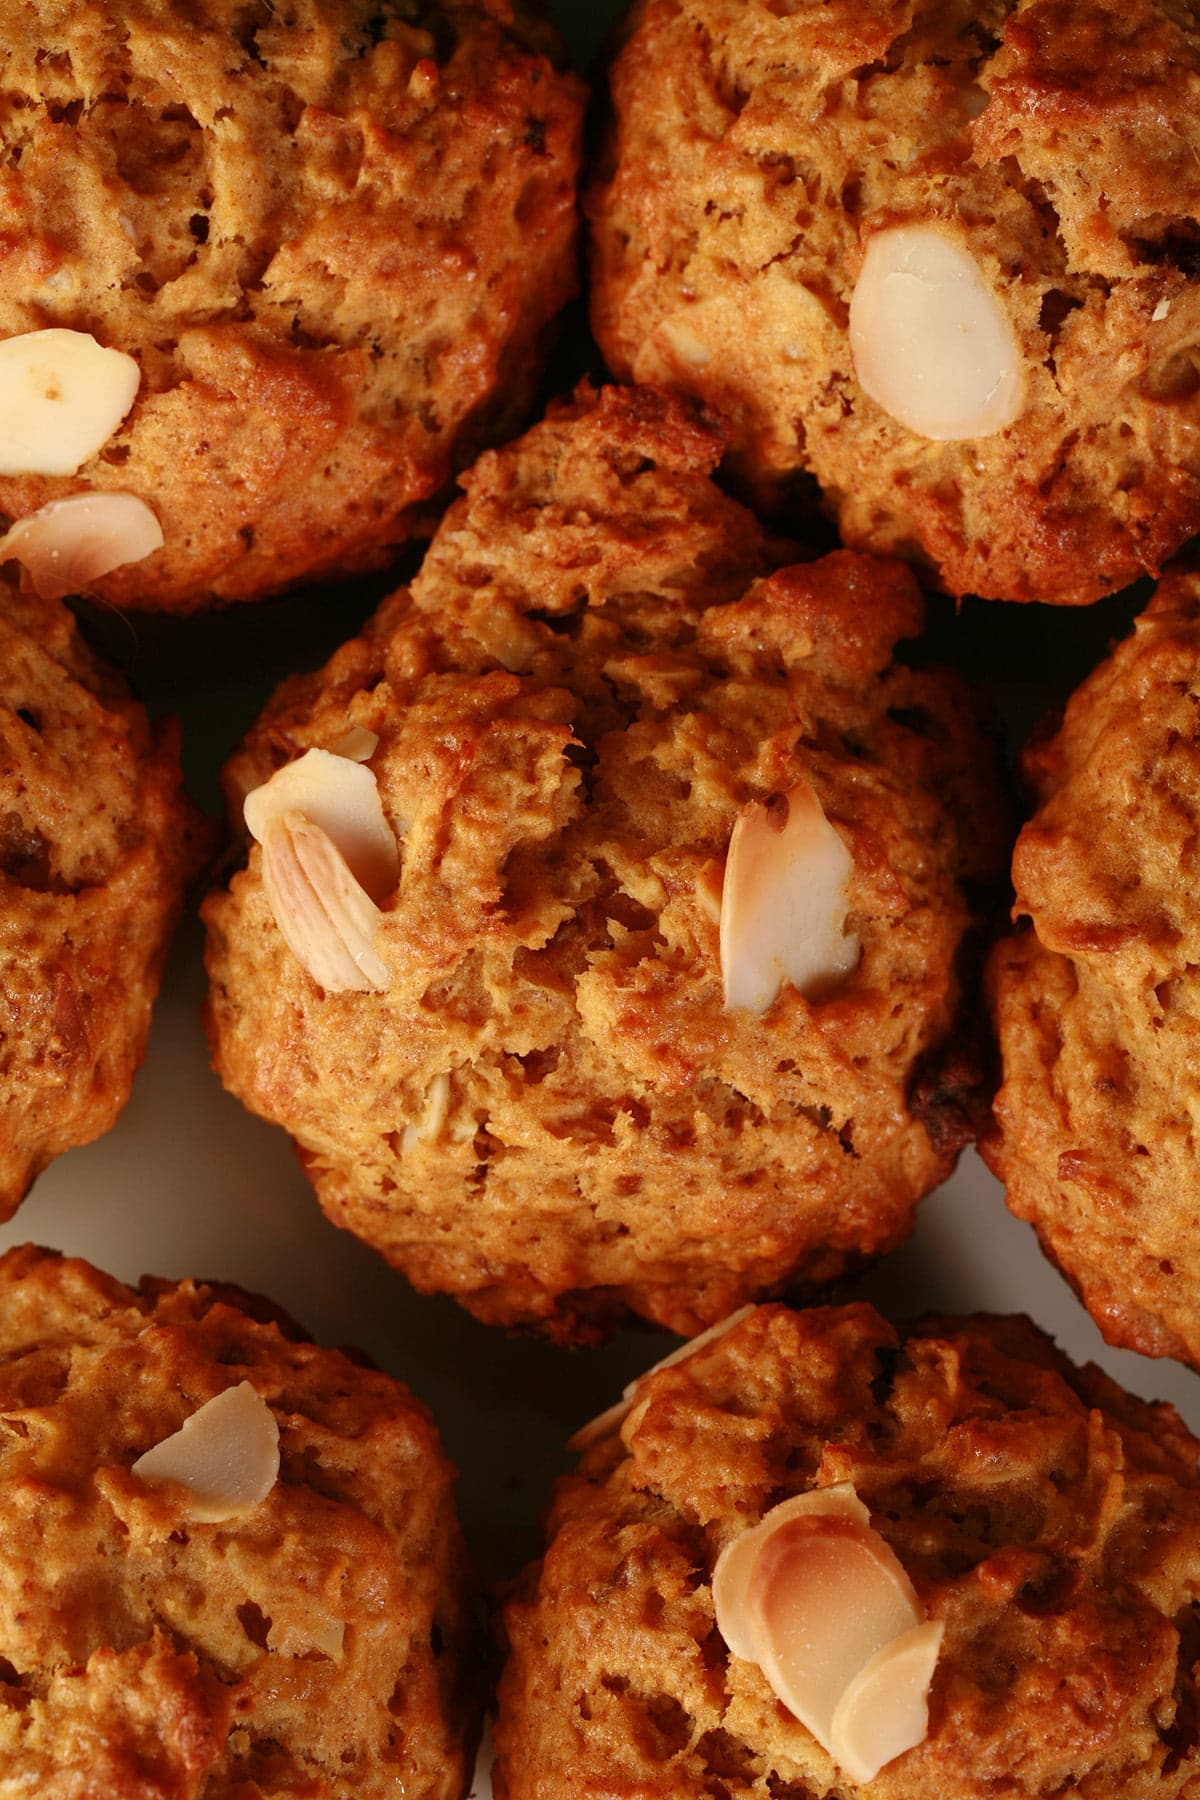 A plate of orange date and almond muffins. They are an orangey brown colour, with slices of almonds and chunks of dates visible throughout.